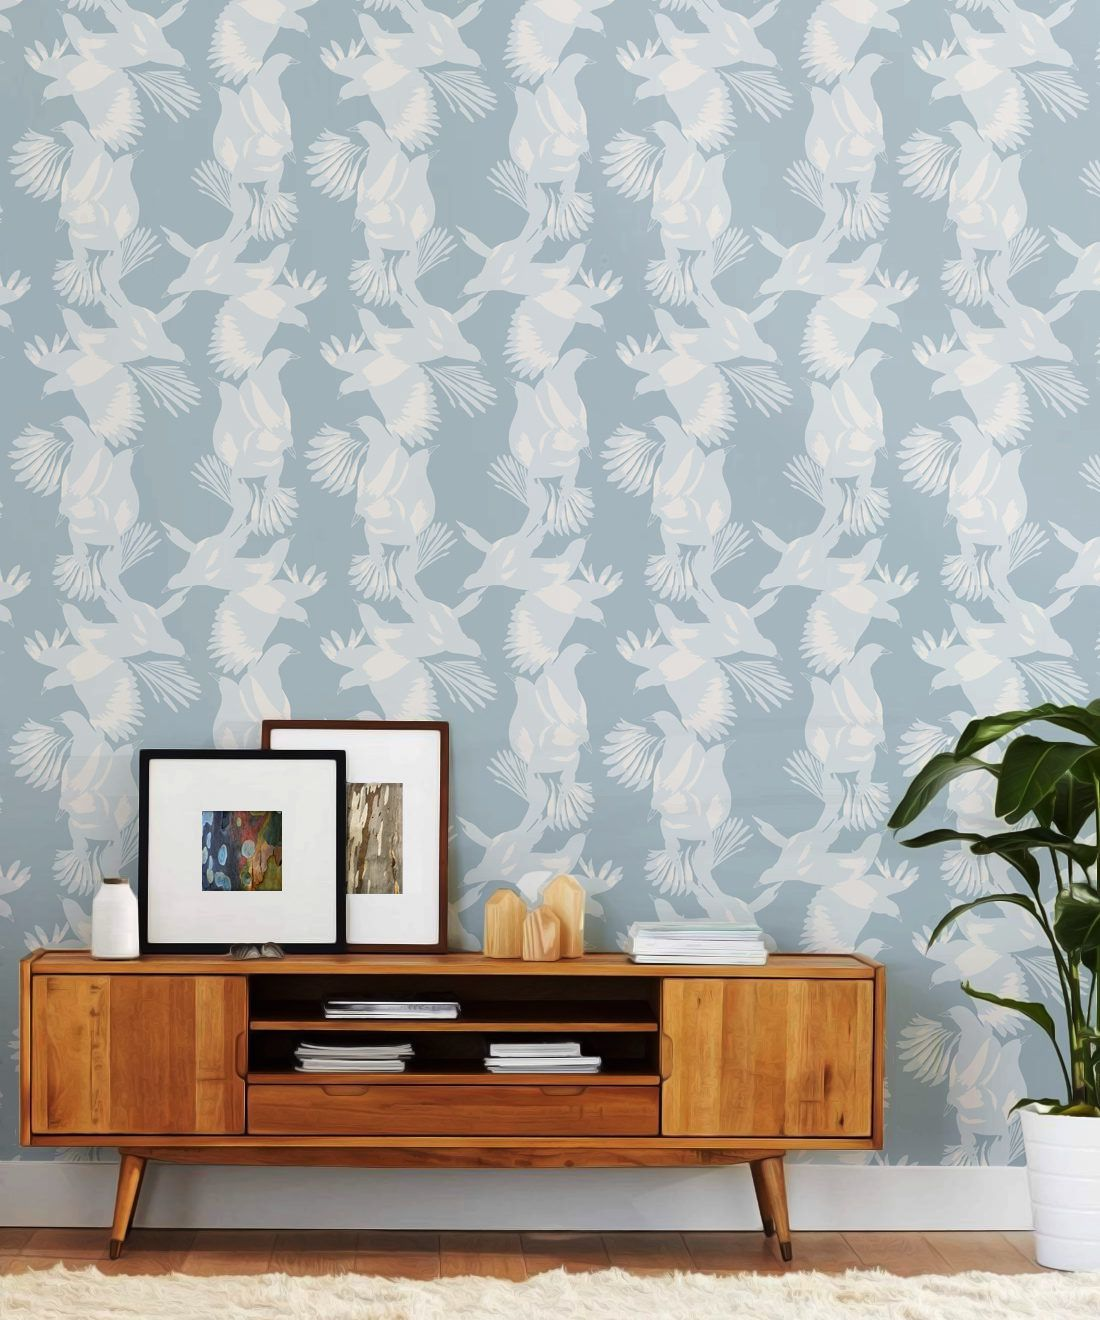 Magpie Wallpaper • Milton & King • Kingdom Home • Bird Wallpaper • Blue Bell Roll